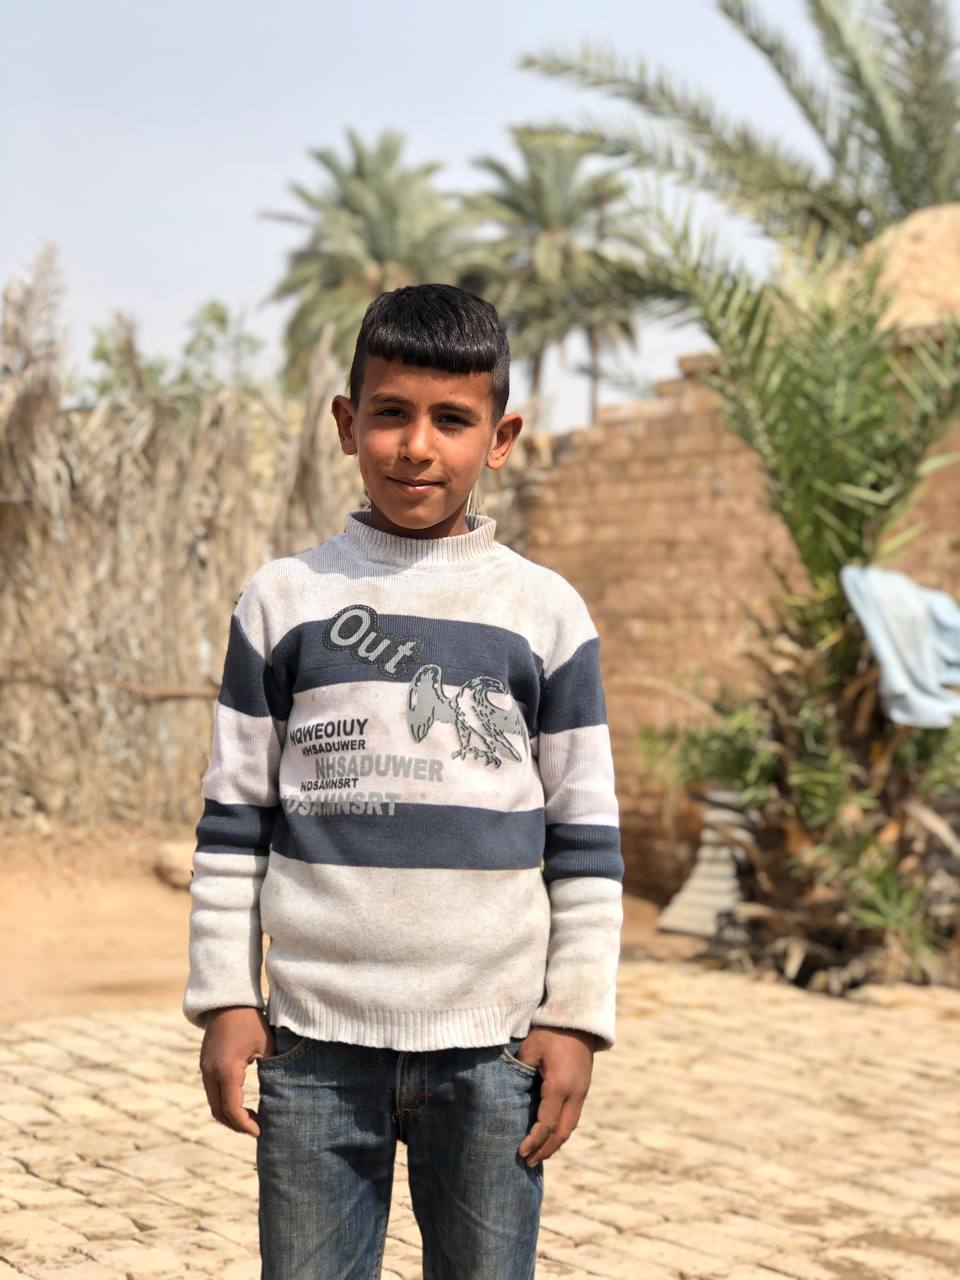 10-year-old Ahmed at Al-Mahatta displacement camp in Iraq.